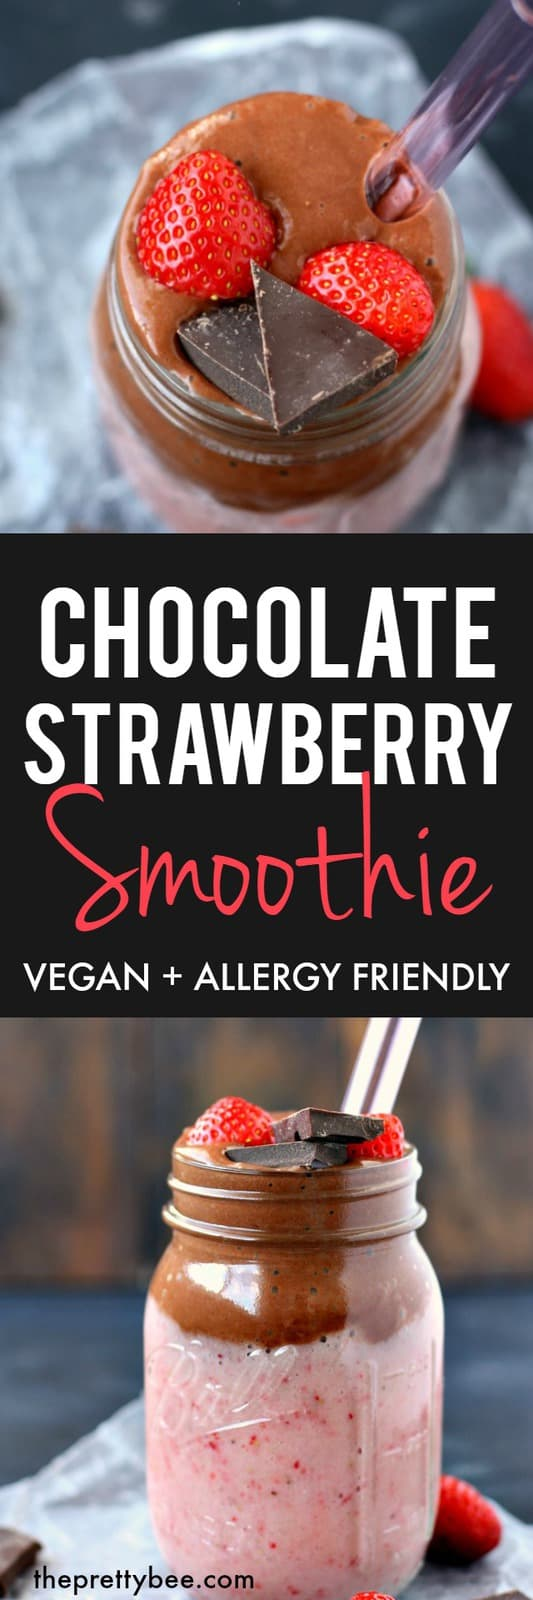 This chocolate strawberry smoothie is dairy free, vegan, and a healthy sweet treat! #dairyfree #glutenfree #vegan